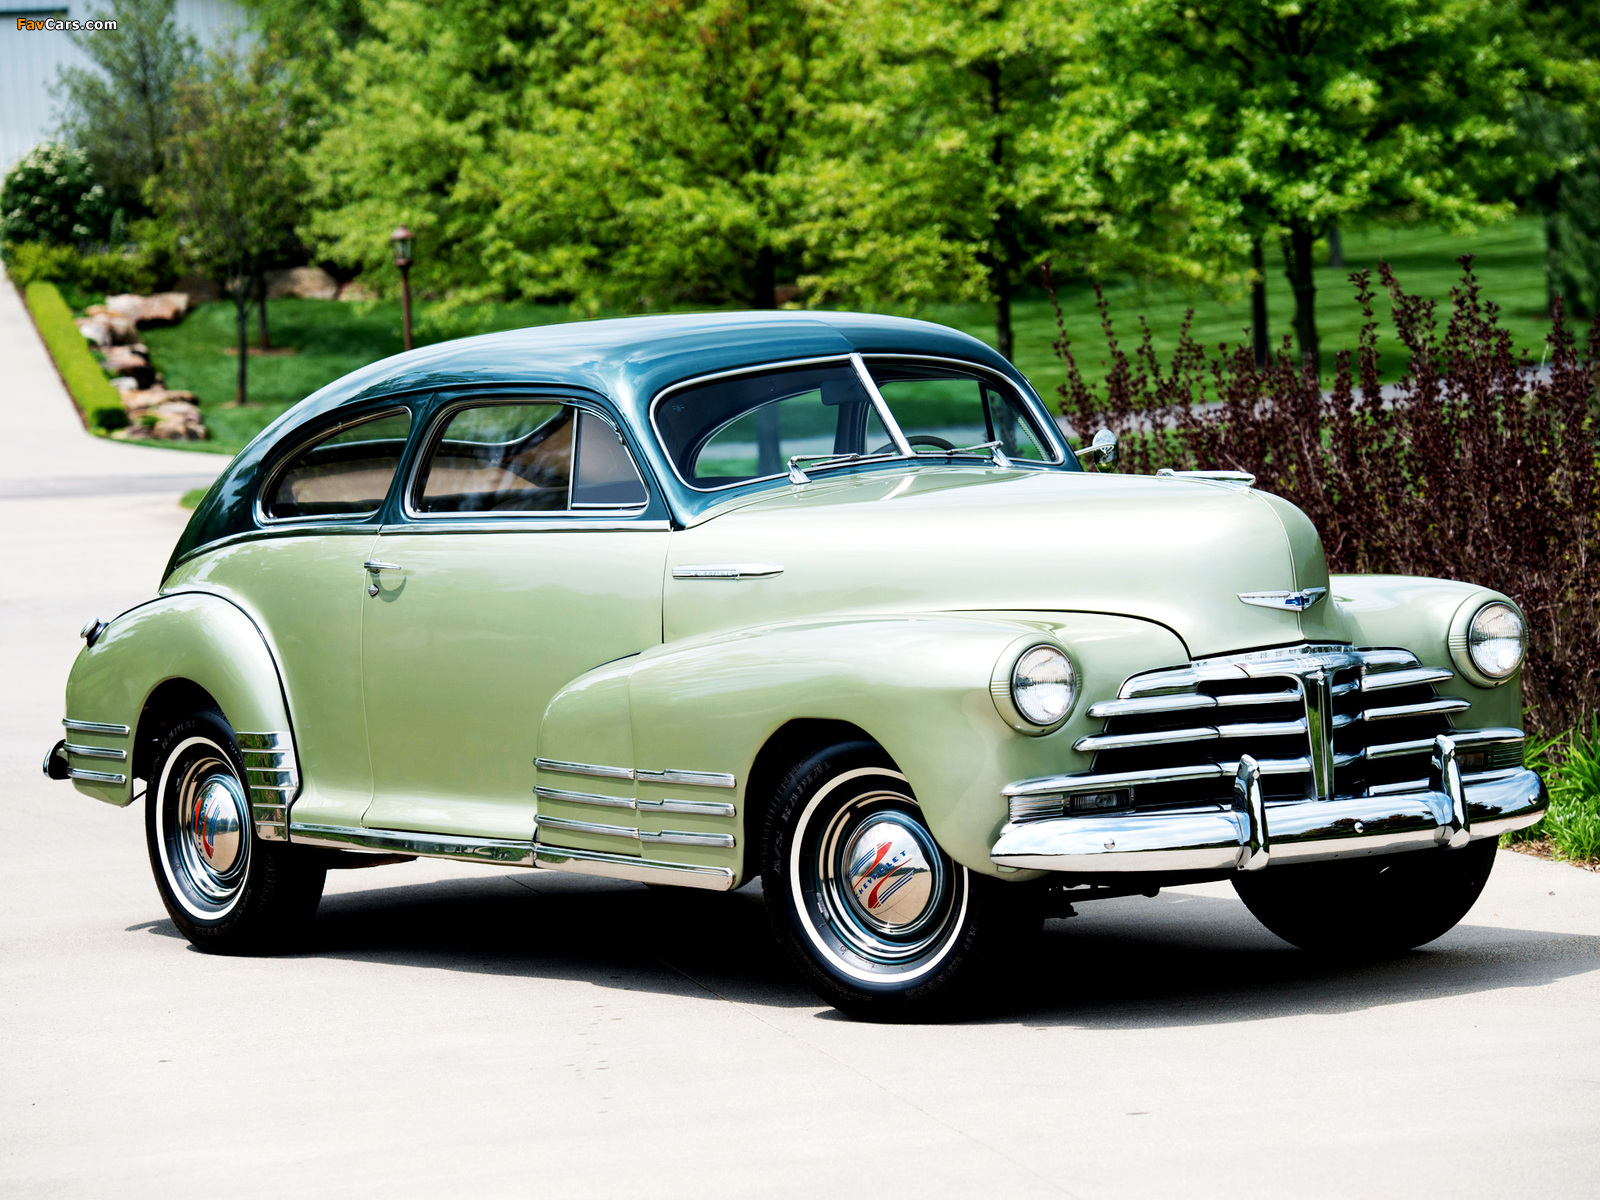 10000 Free Animated GIF Images Download Moving Clip Arts 1948 chevy fleetline photos